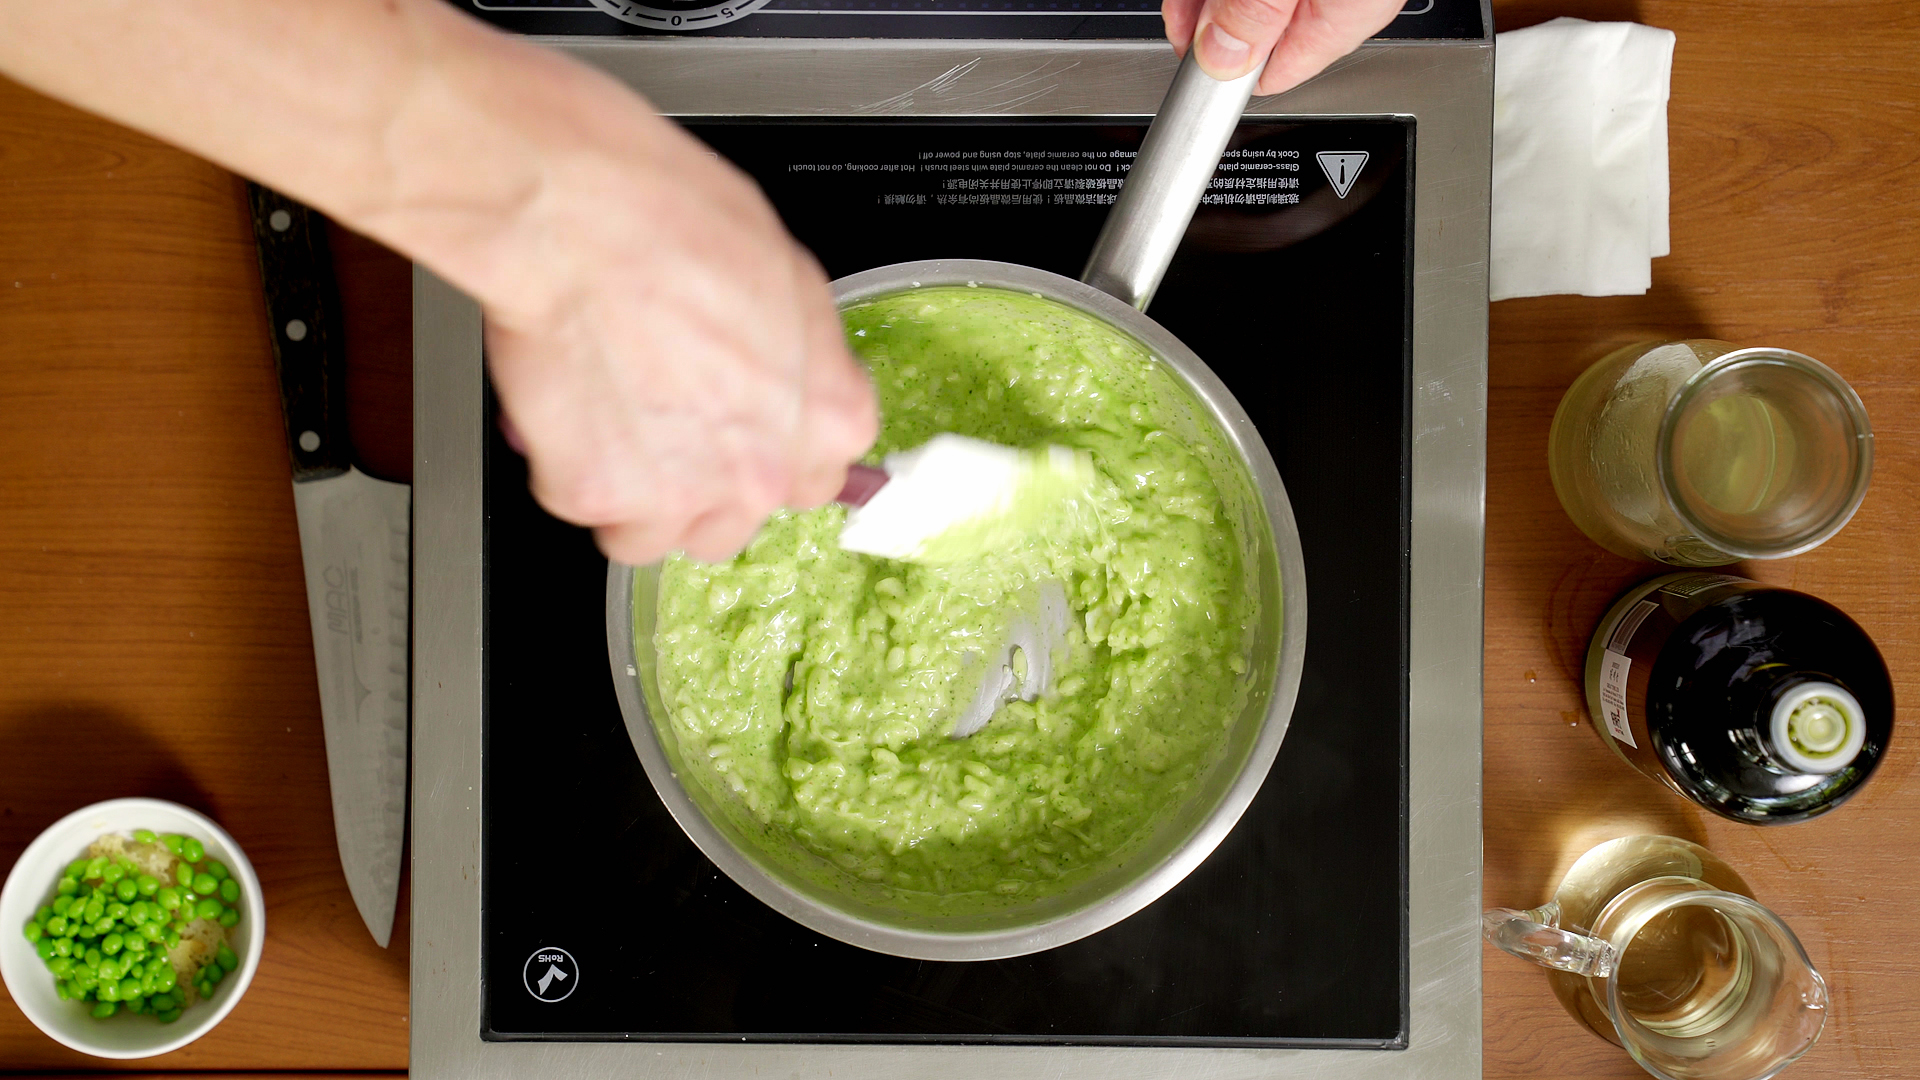 Risotto base - Step 6: Add 100-150 grams of the green pea puree to the risotto and keep stirring (stirring after adding puree)